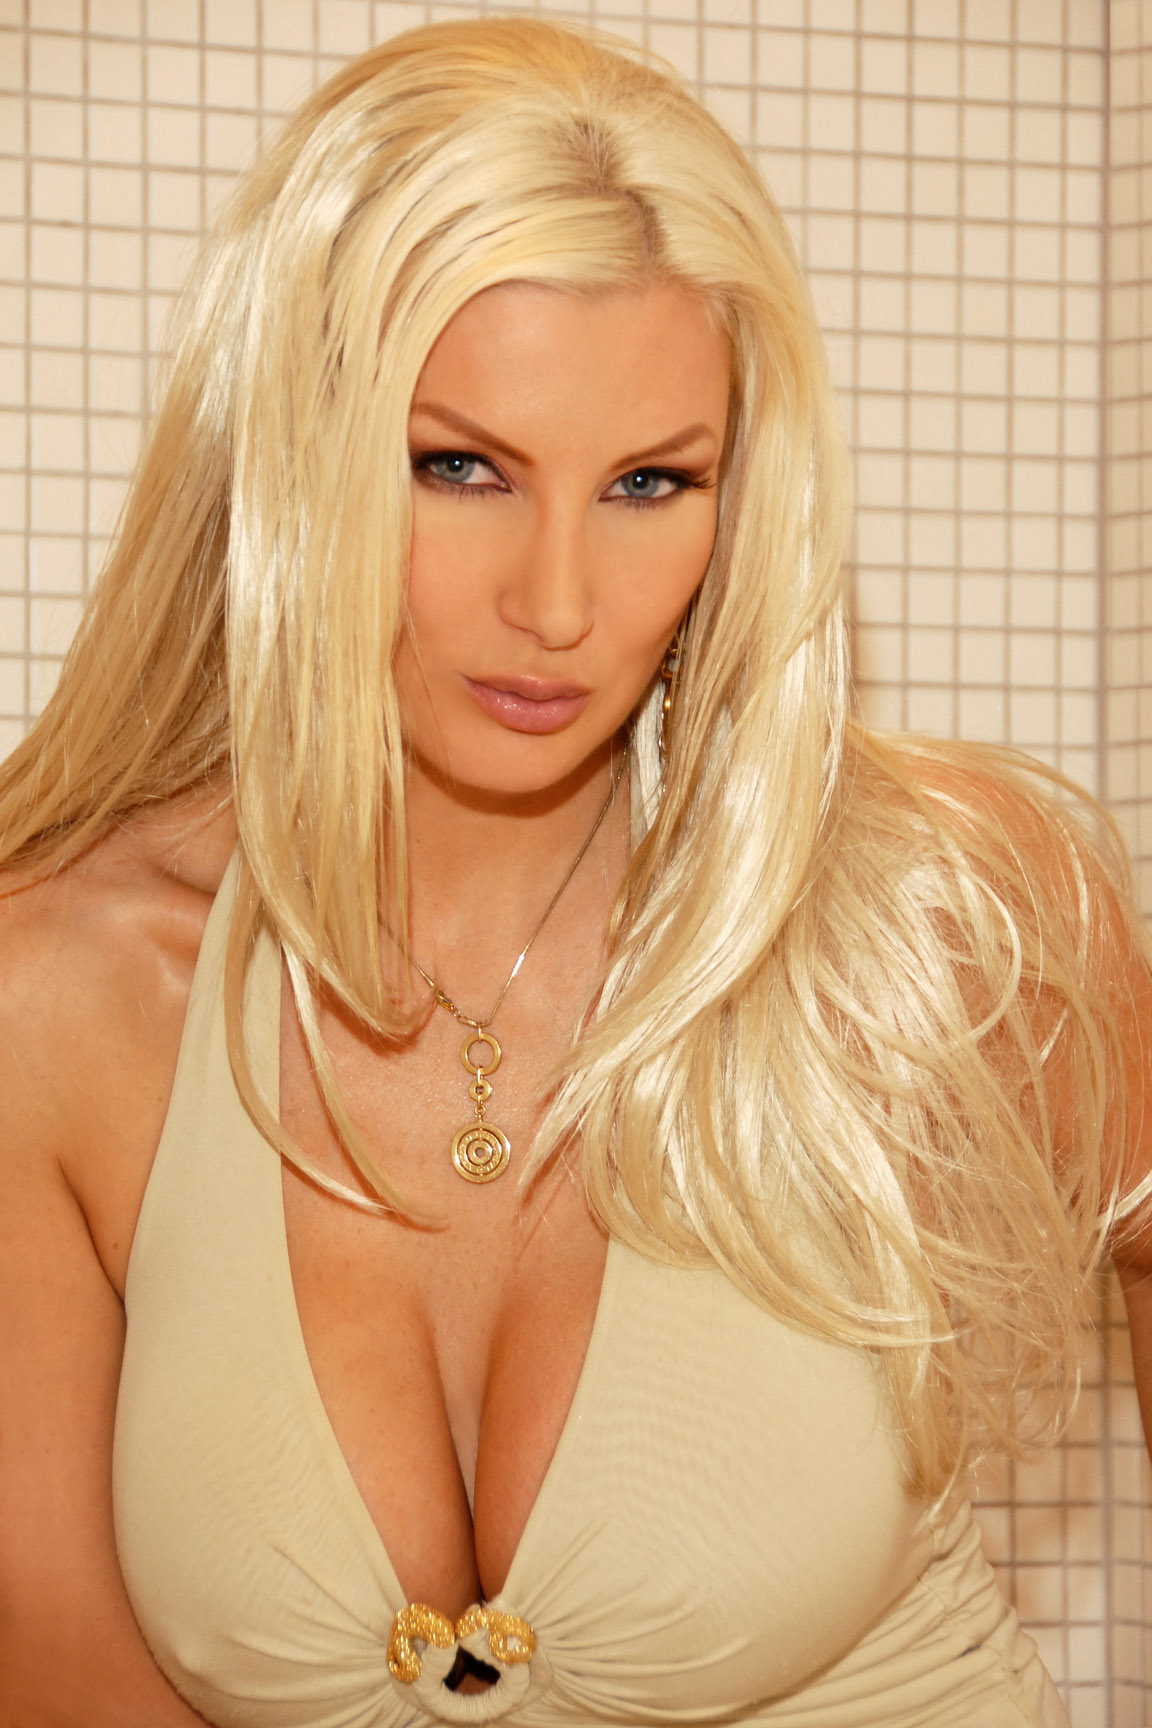 Adore women pictures of pornstar brittany andrews Hart hot!